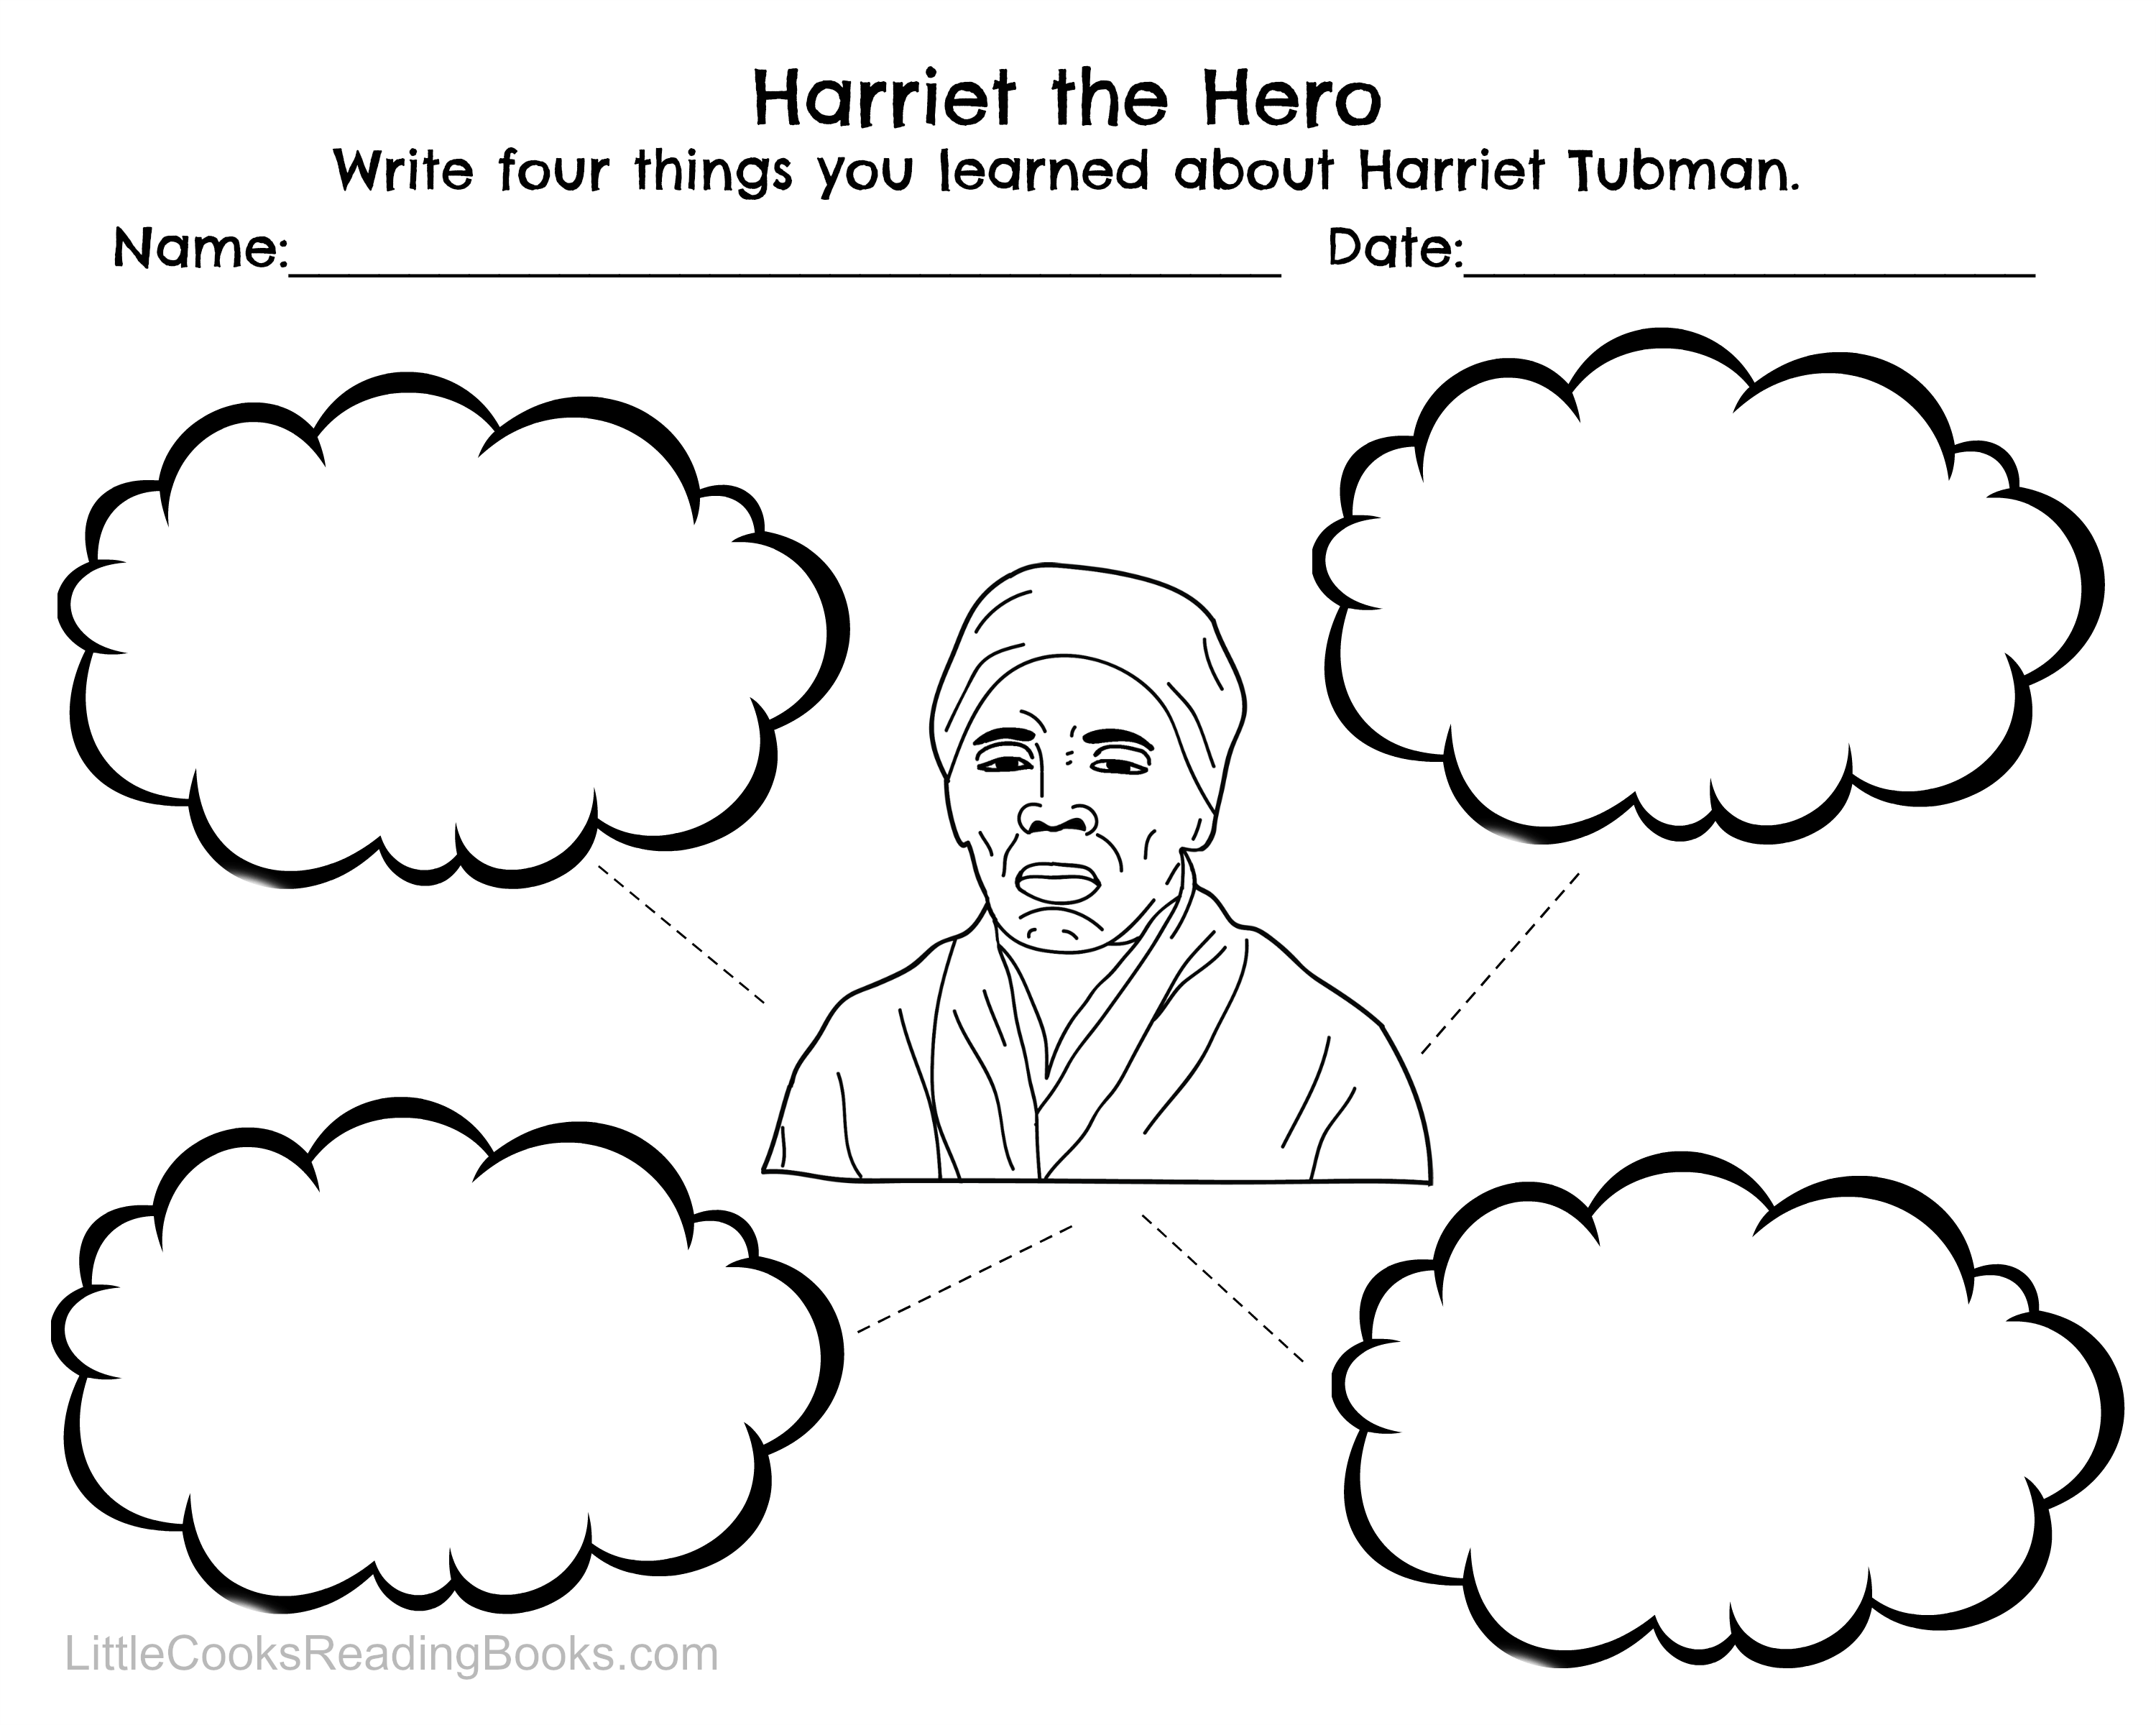 Worksheets Harriet Tubman Worksheets harriet tubman and underground railroad free printables little cooks reading books